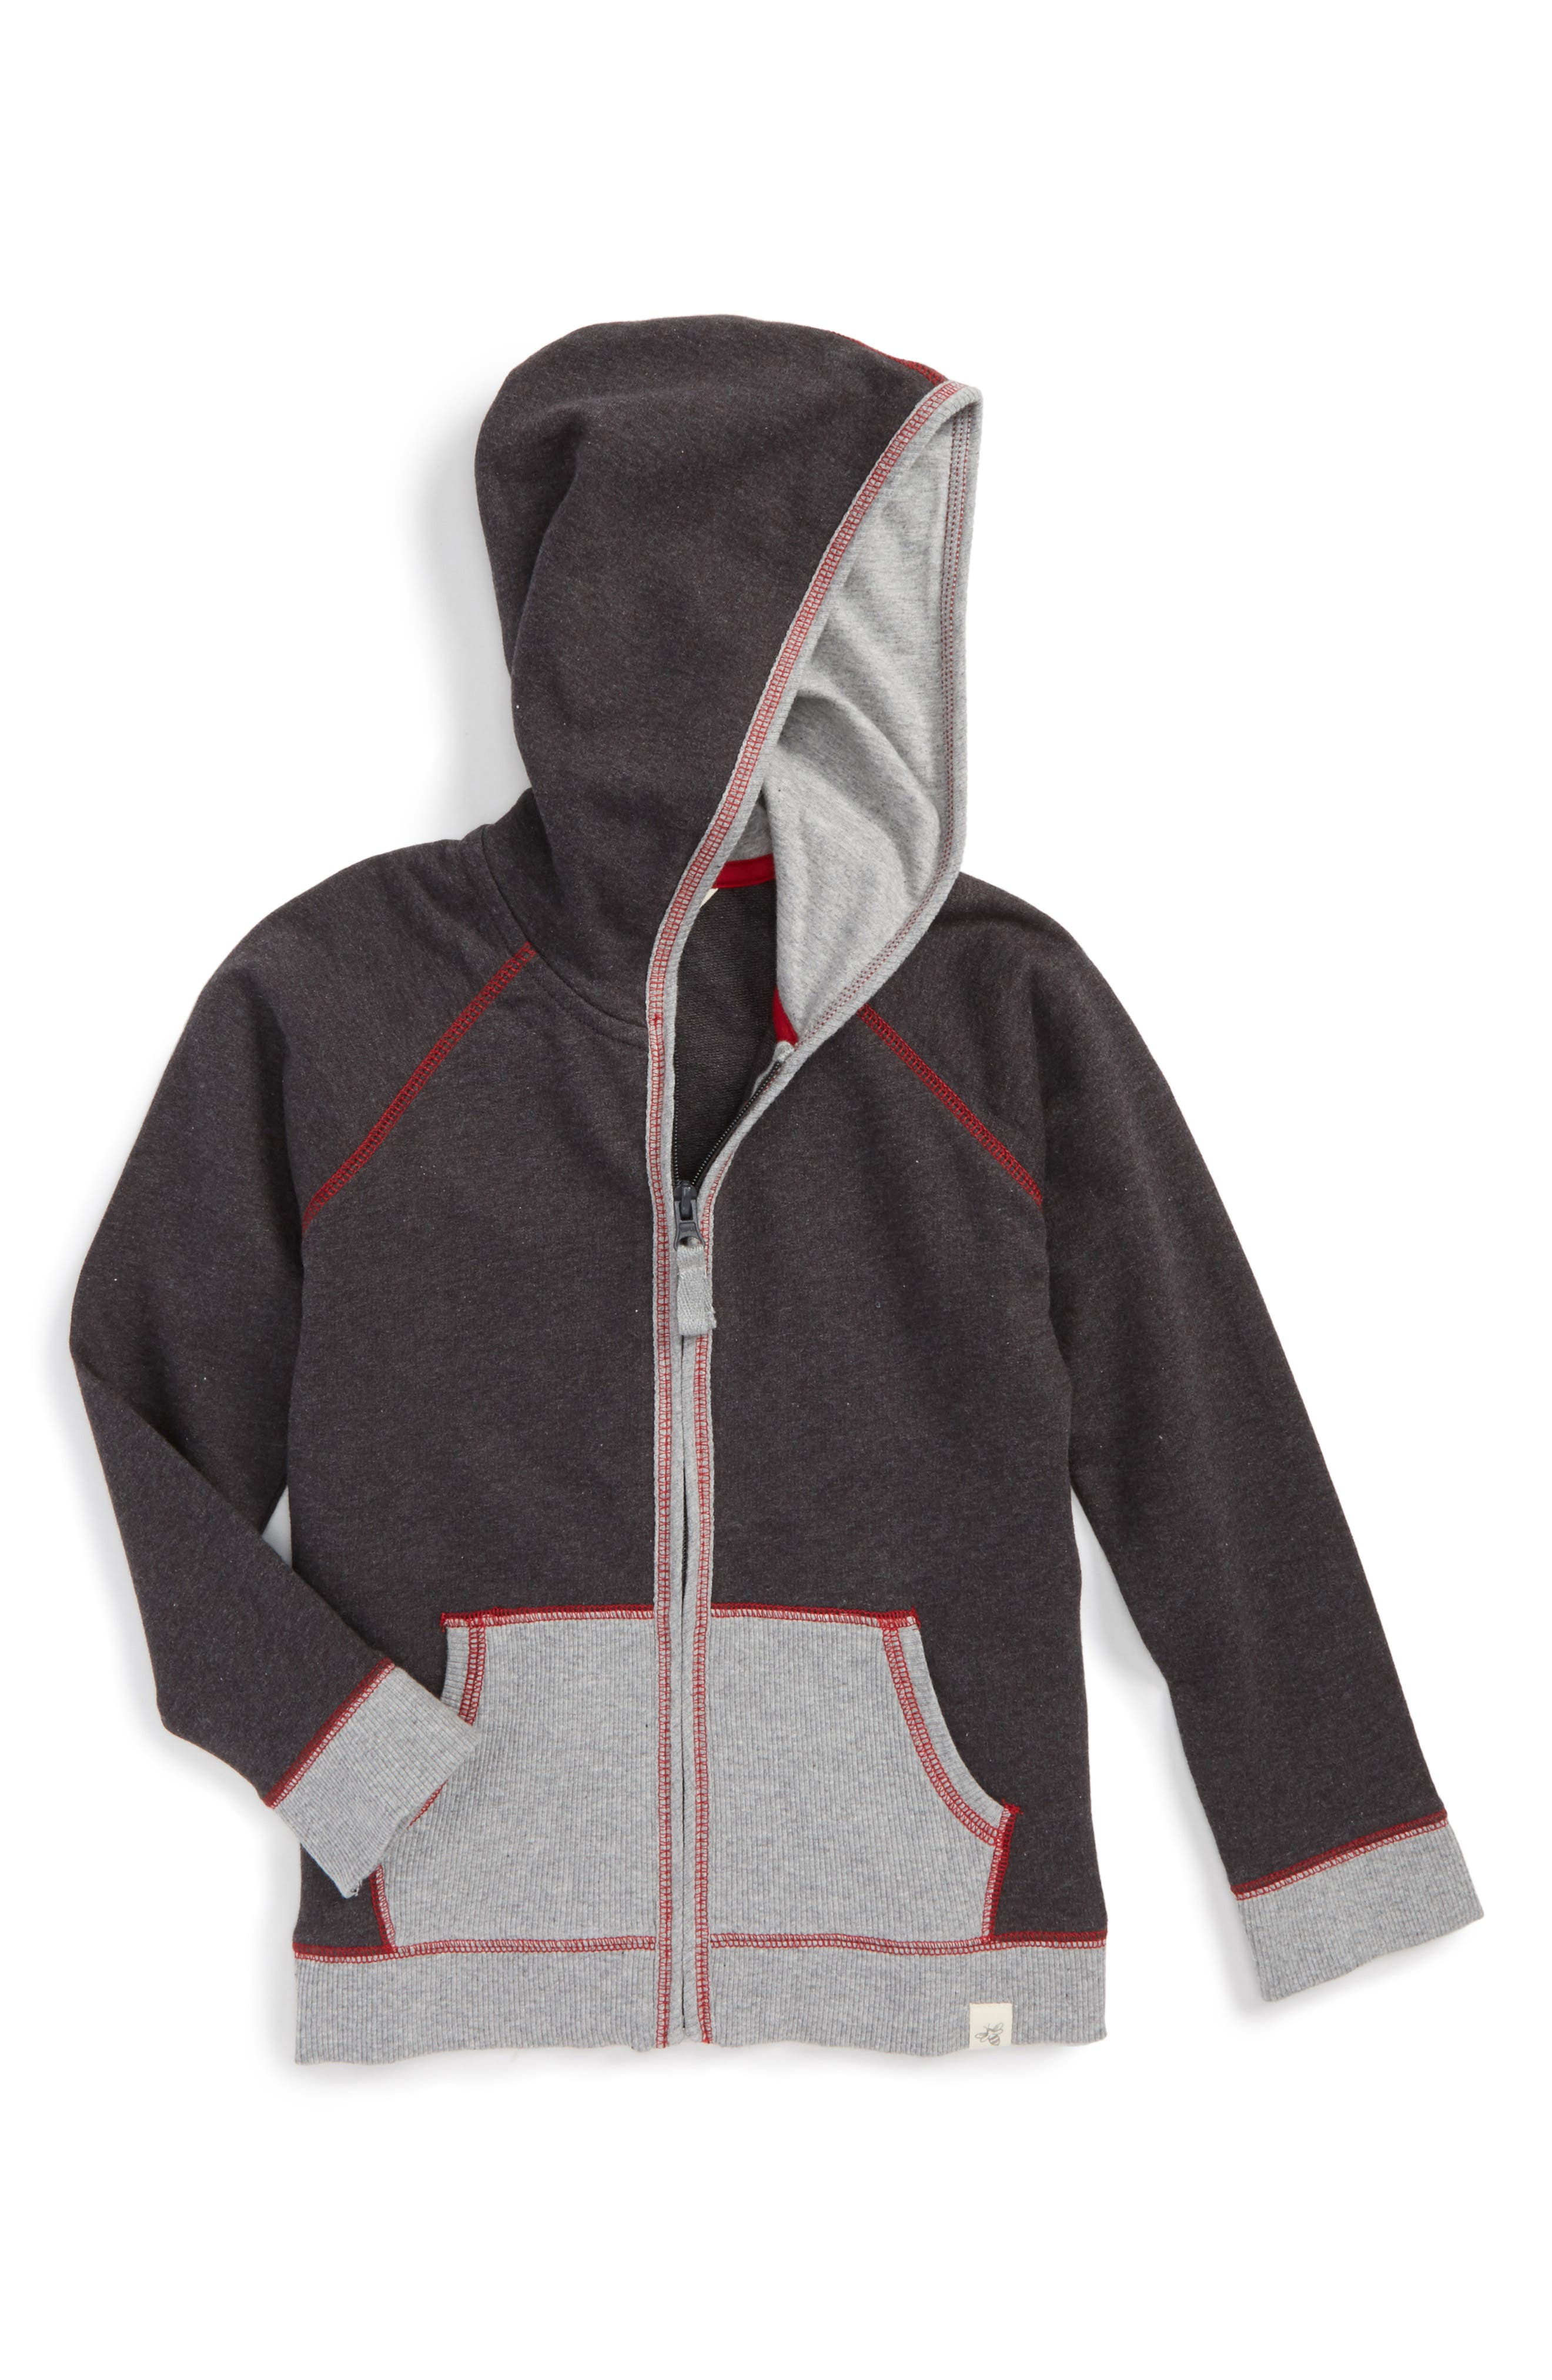 Burt's Bees Baby French Terry Organic Cotton Hoodie (Toddler Boys & Little Boys)